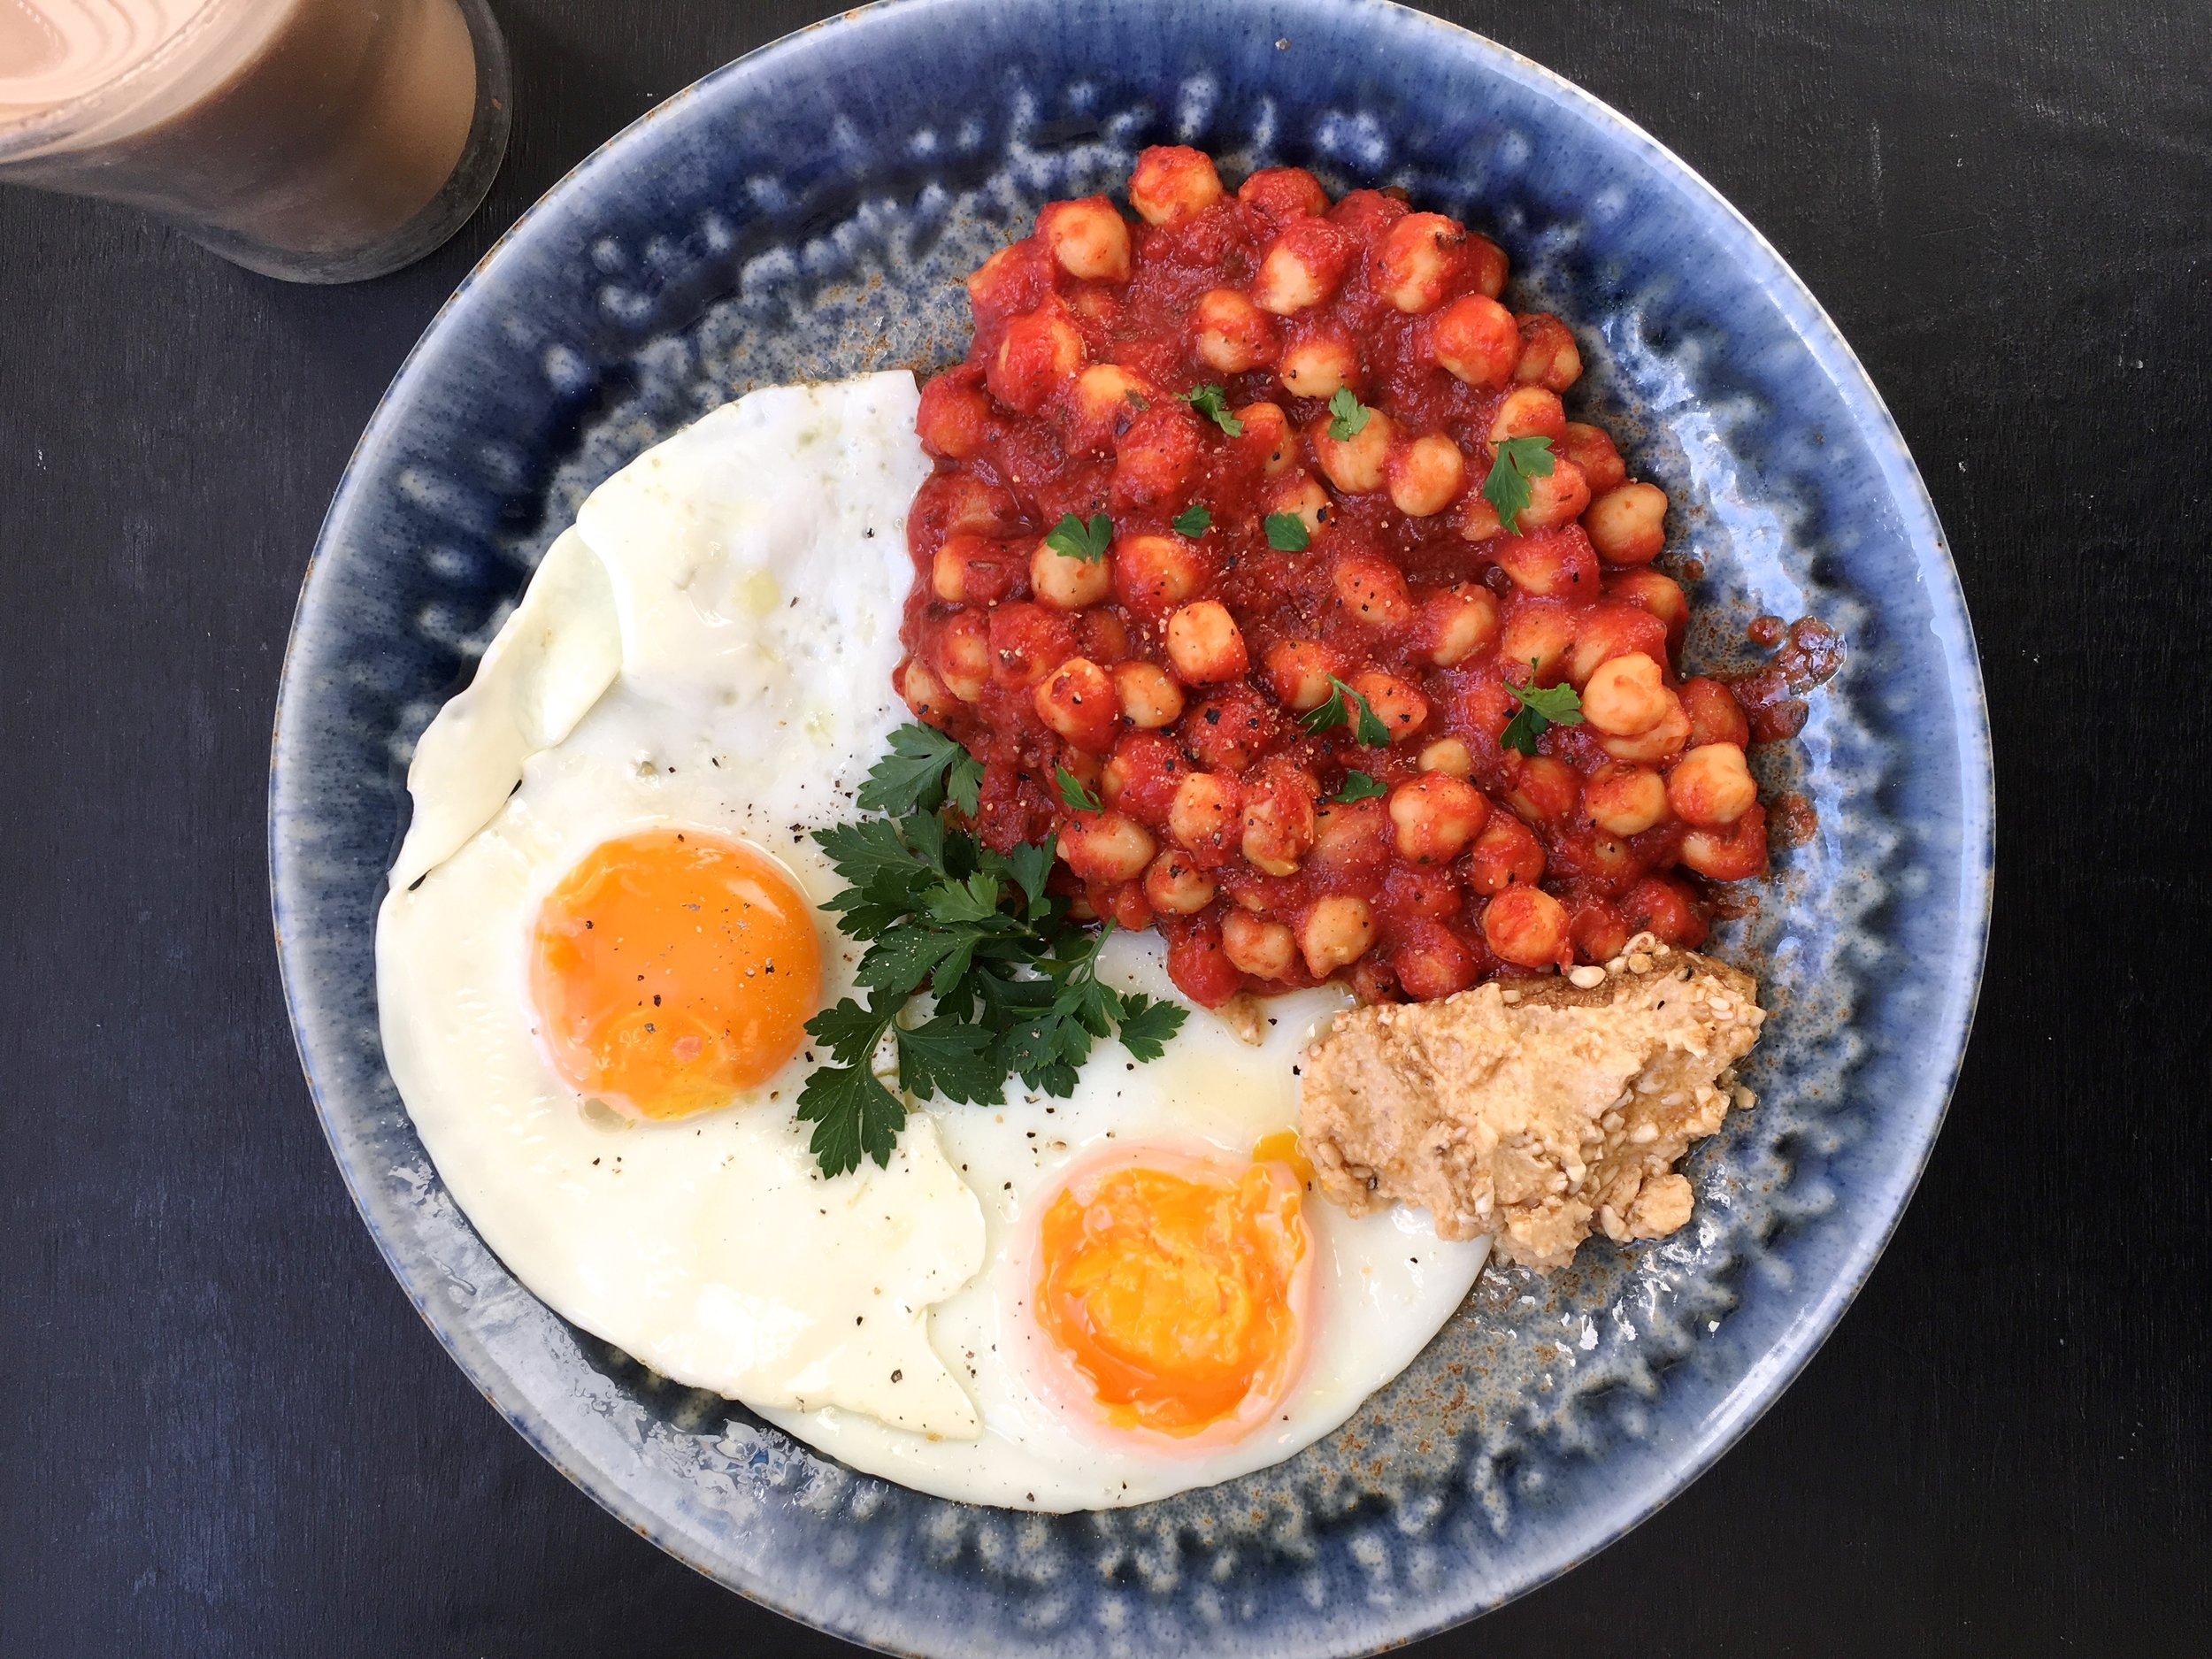 Healthy breakfast Recipe Idea - chickpeas, tomatoes and eggs